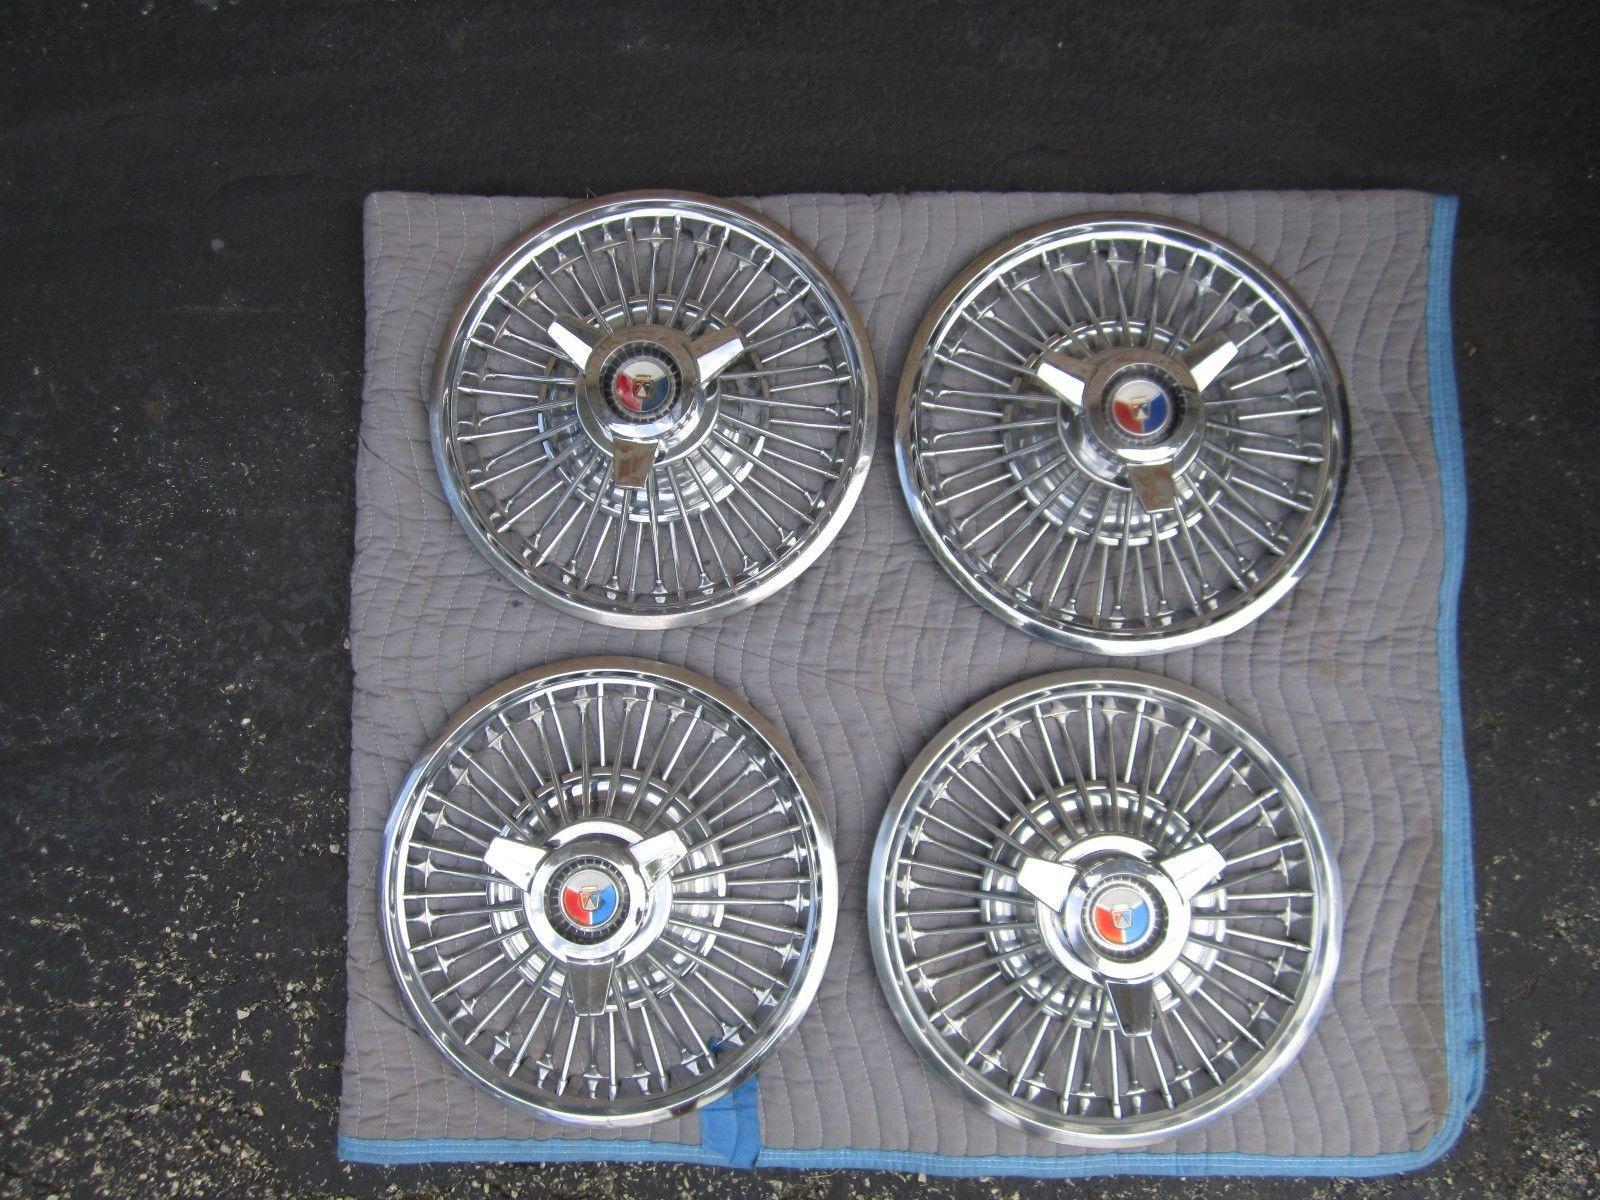 7d2add98c1cabb11b994b269a7aef6d8 4 '64 66 ford mustang wire wheel covers hub caps spinner flipper Simple Electrical Wiring Diagrams at bakdesigns.co